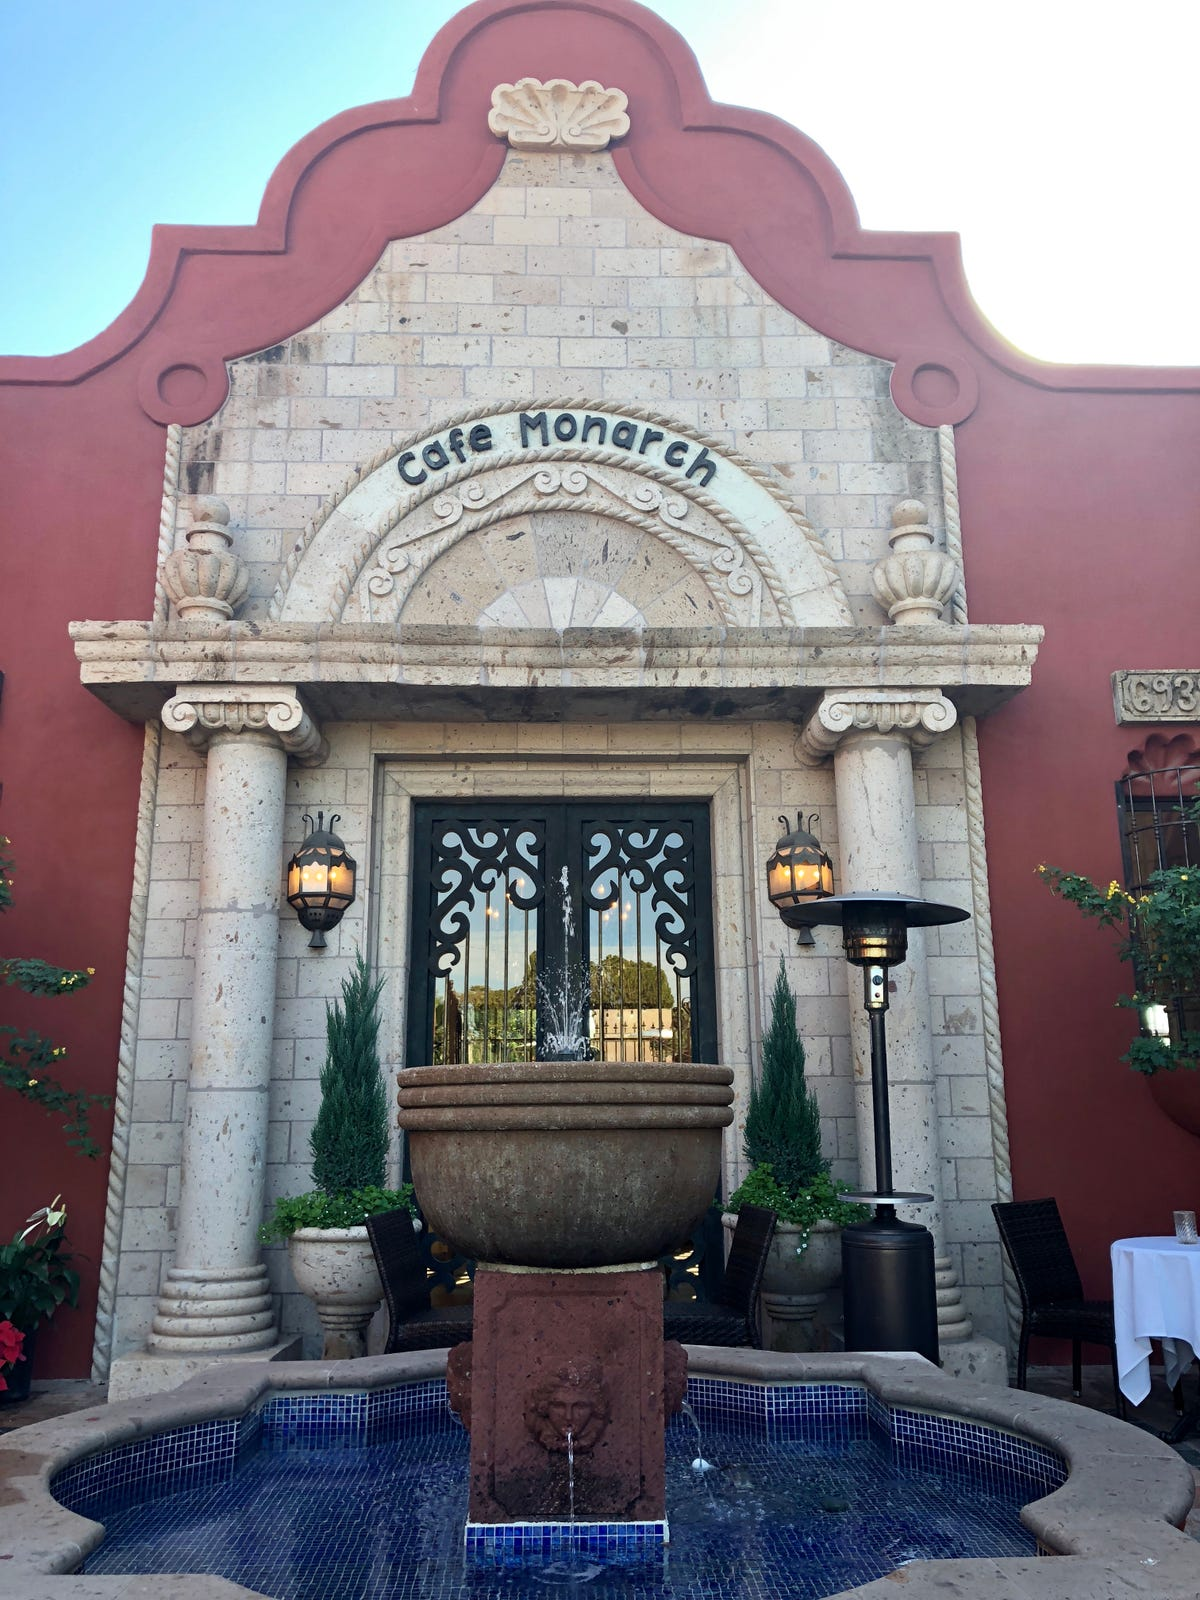 Cafe Monarch in Scottsdale is Yelp's most romantic